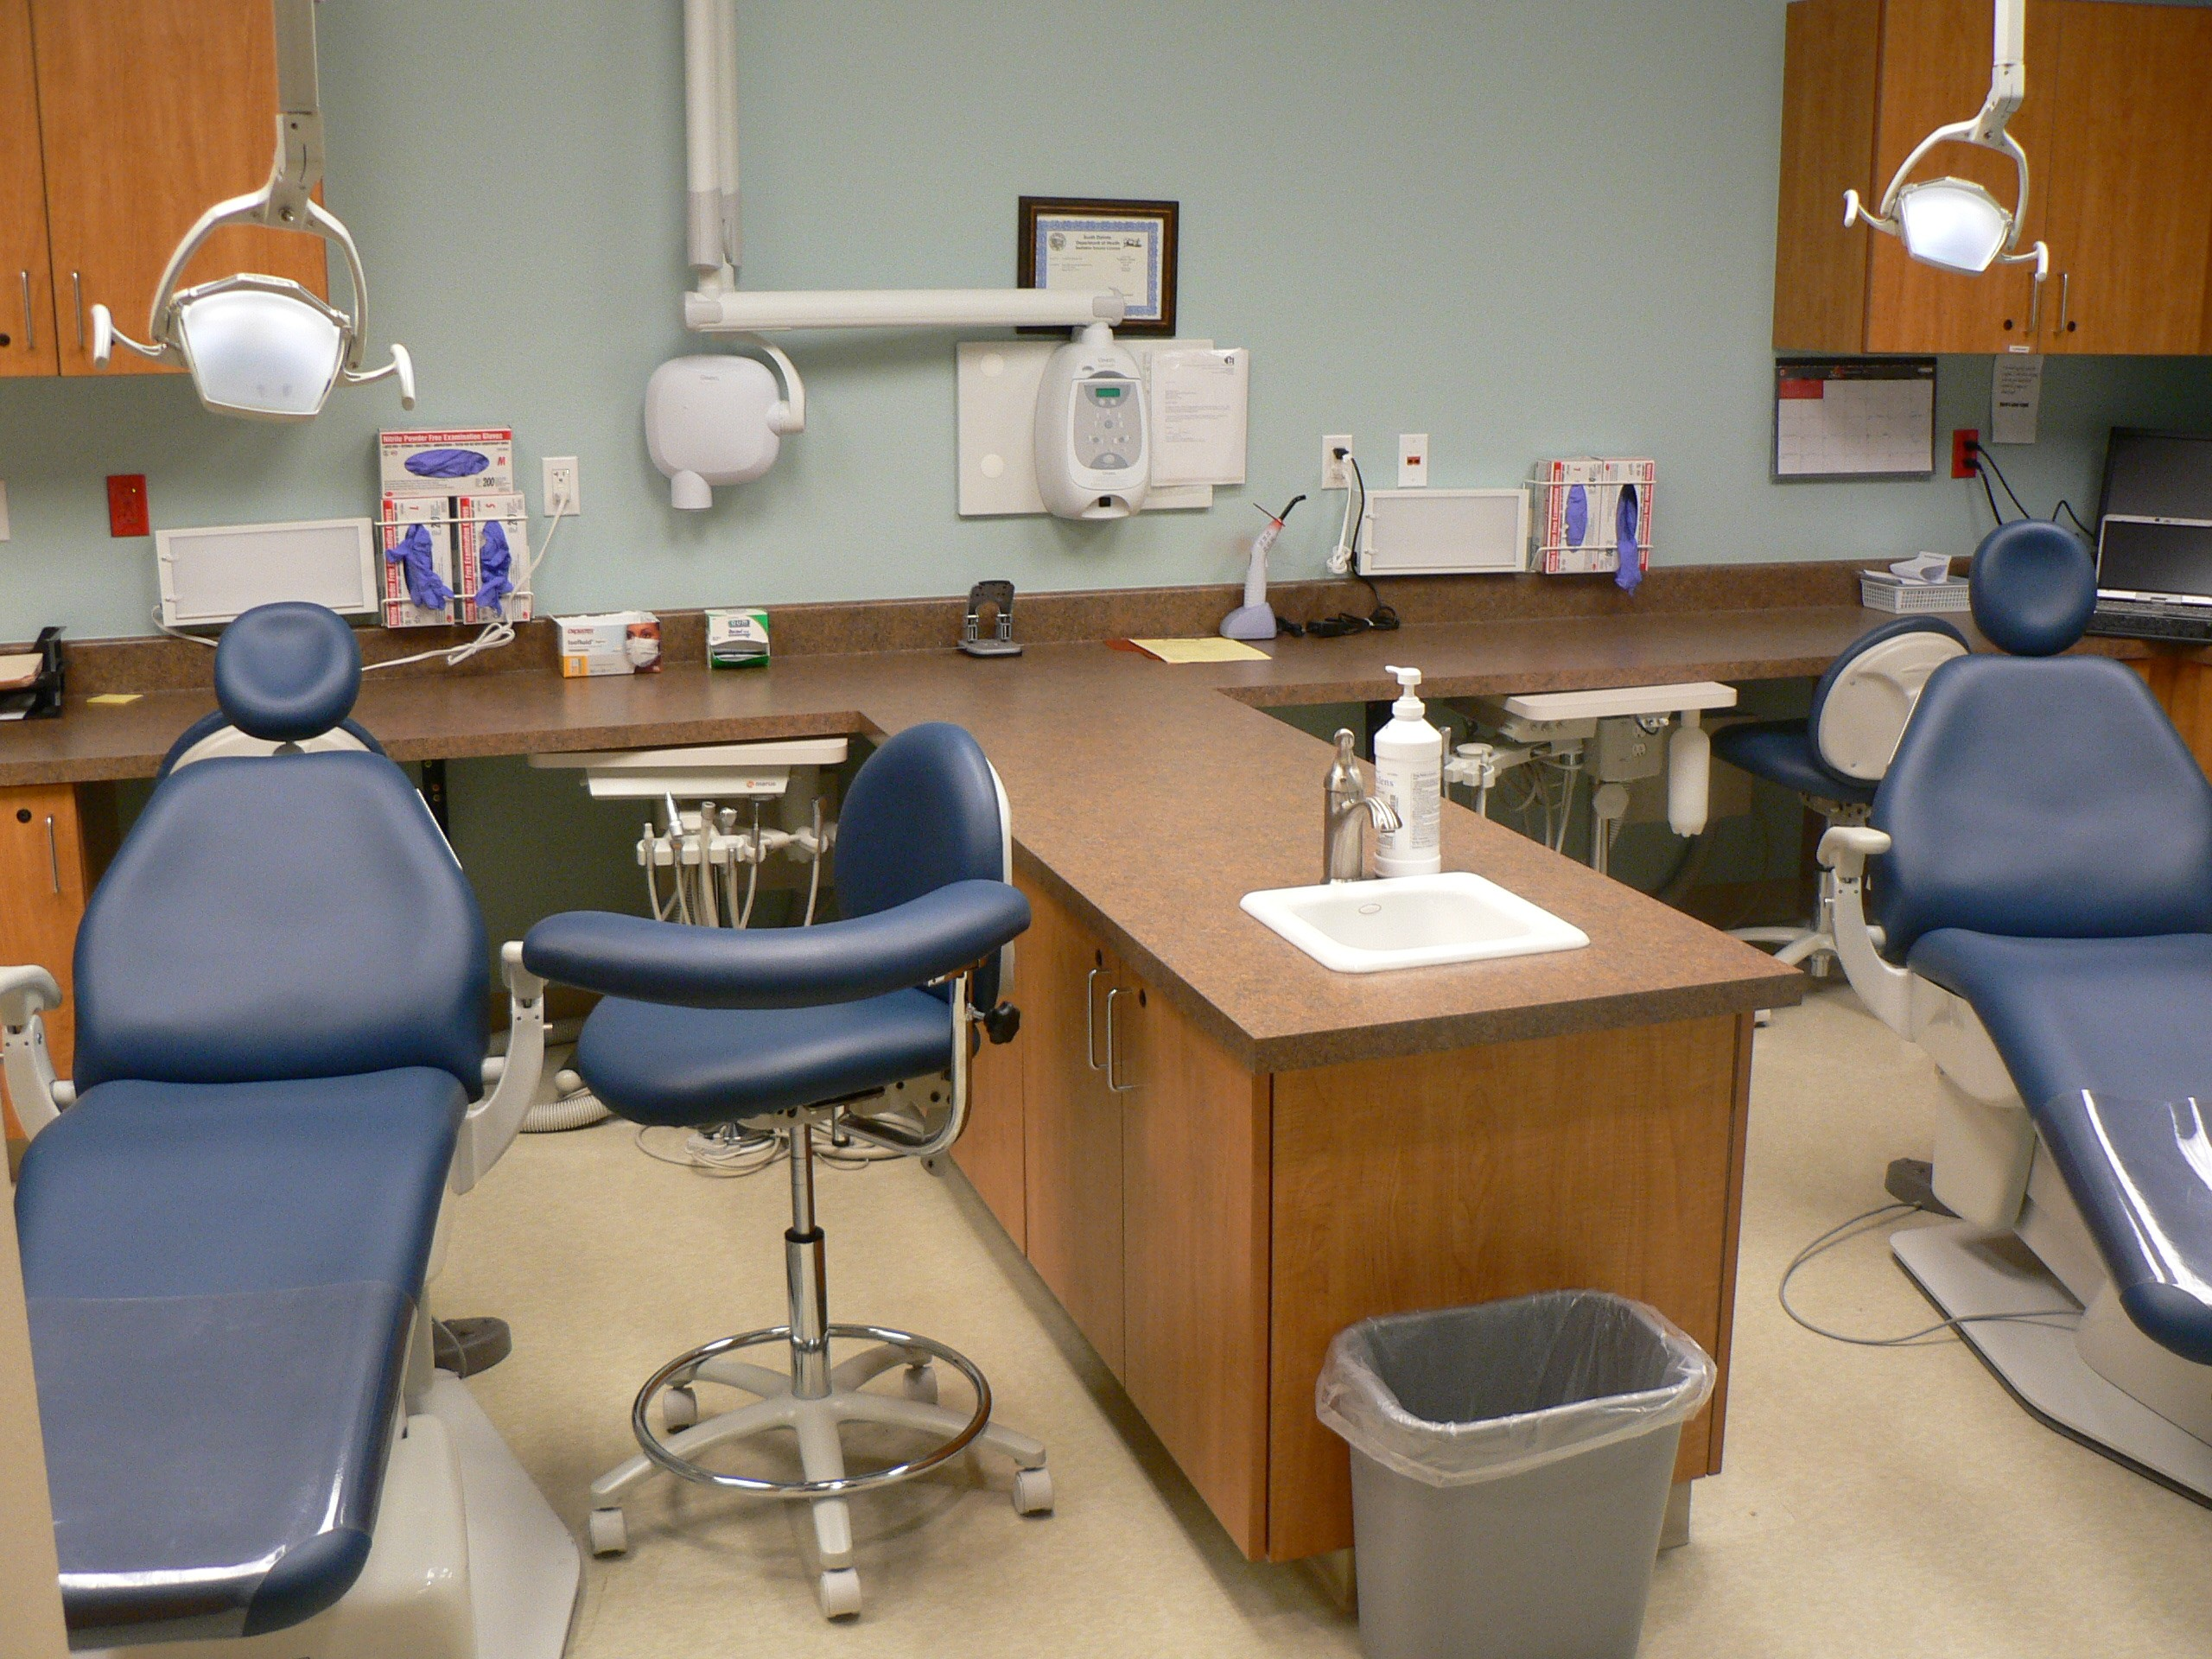 A view of the dental office.